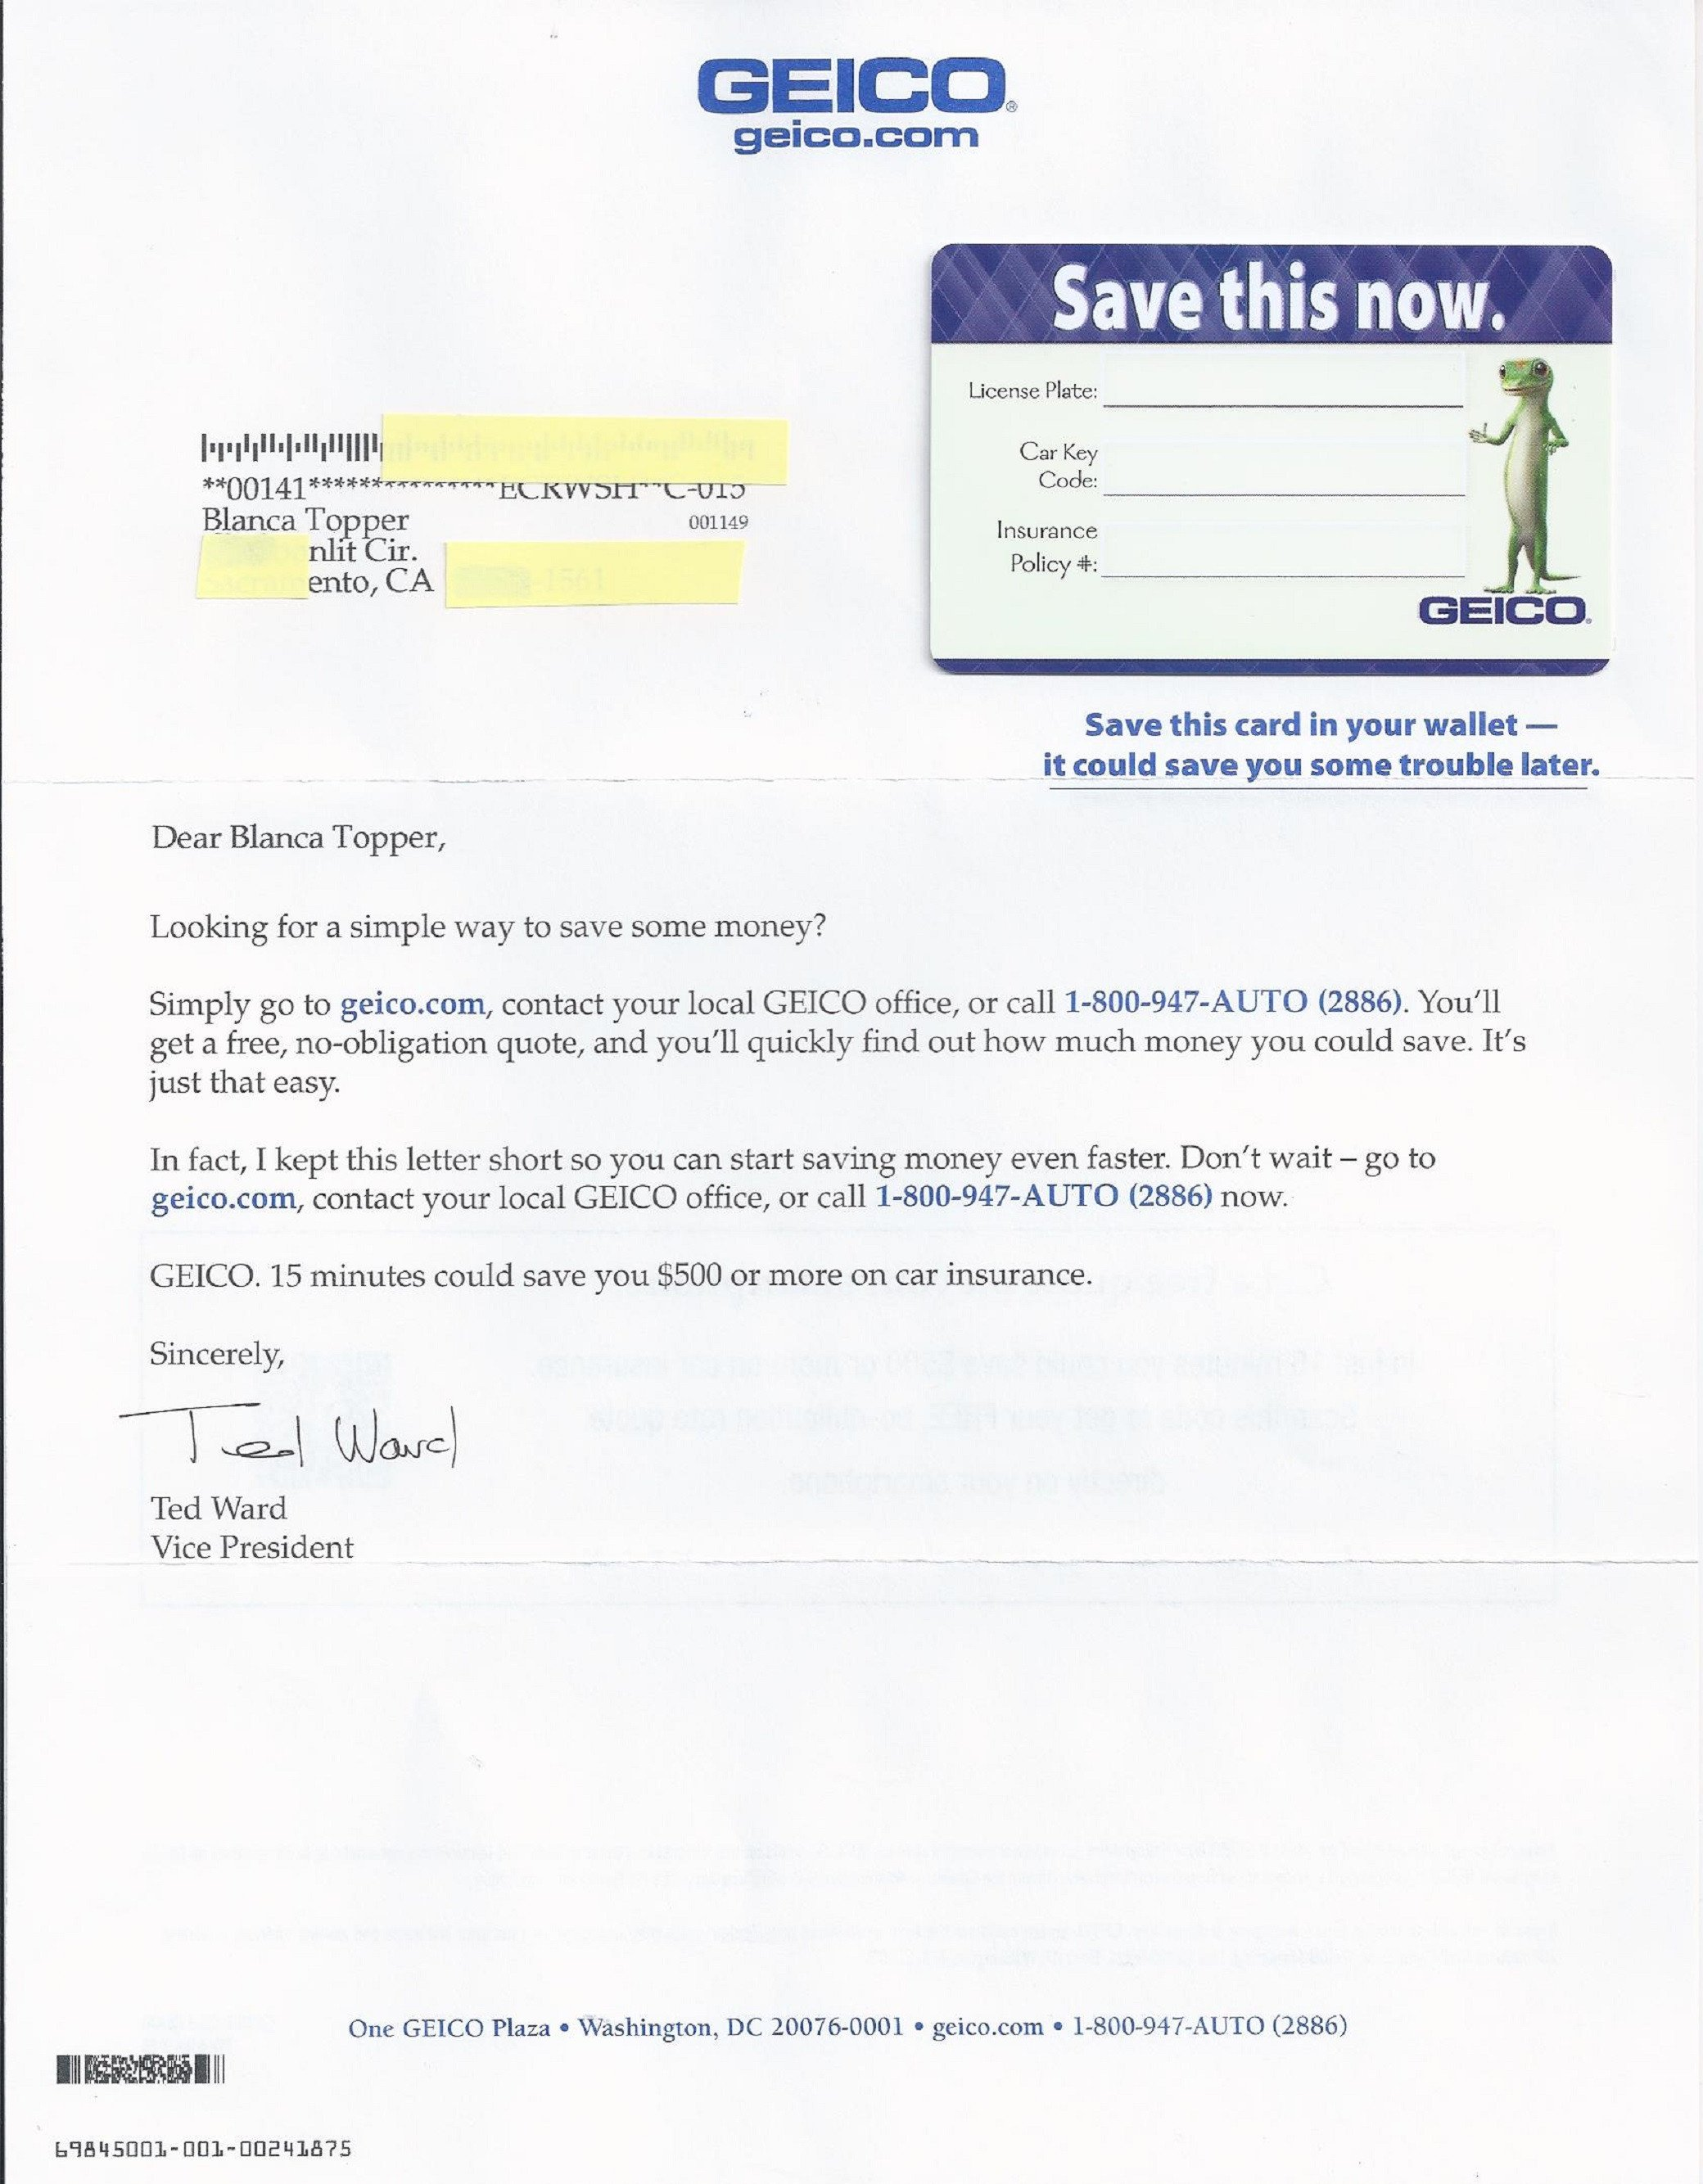 Geico Insurance Card Template Download This is Possible Ly with Direct Mail